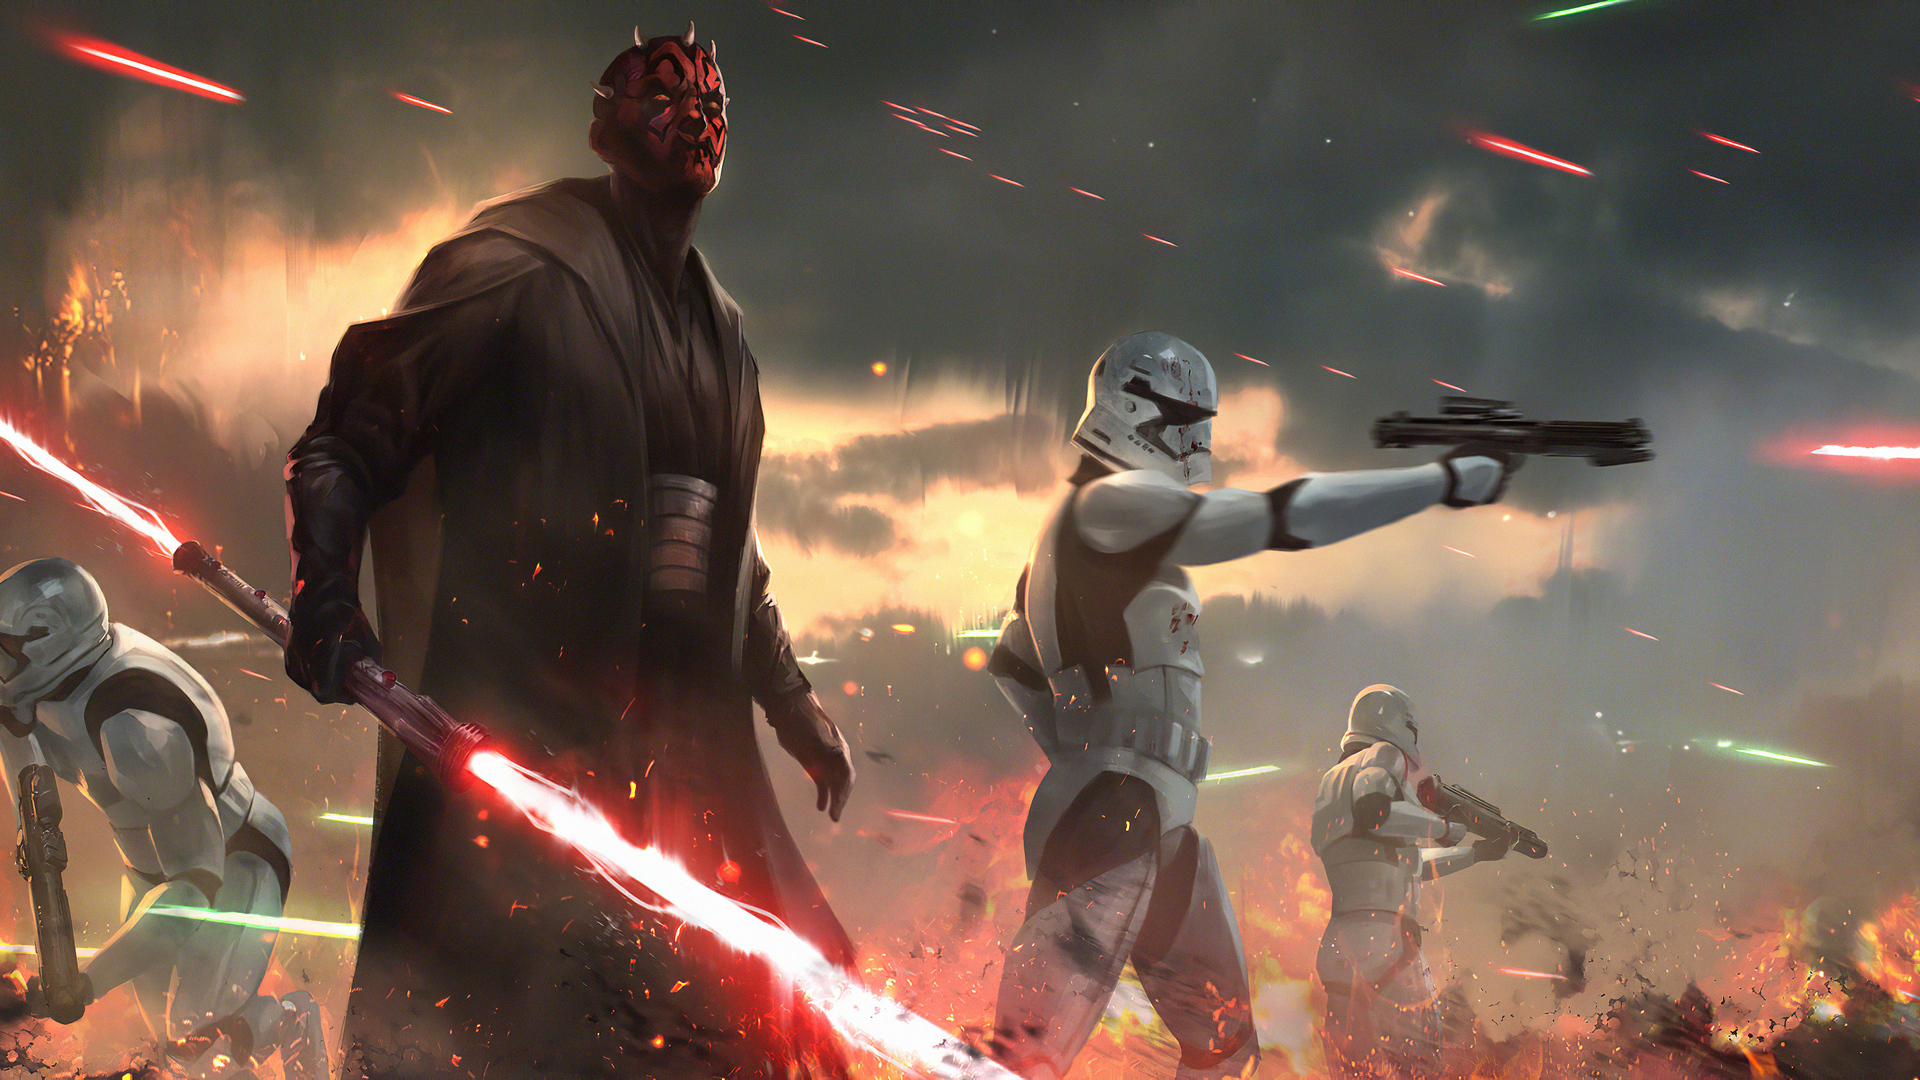 1920x1080 Darth Maul Star Wars Fanartwork Laptop Full Hd 1080p Hd 4k Wallpapers Images Backgrounds Photos And Pictures